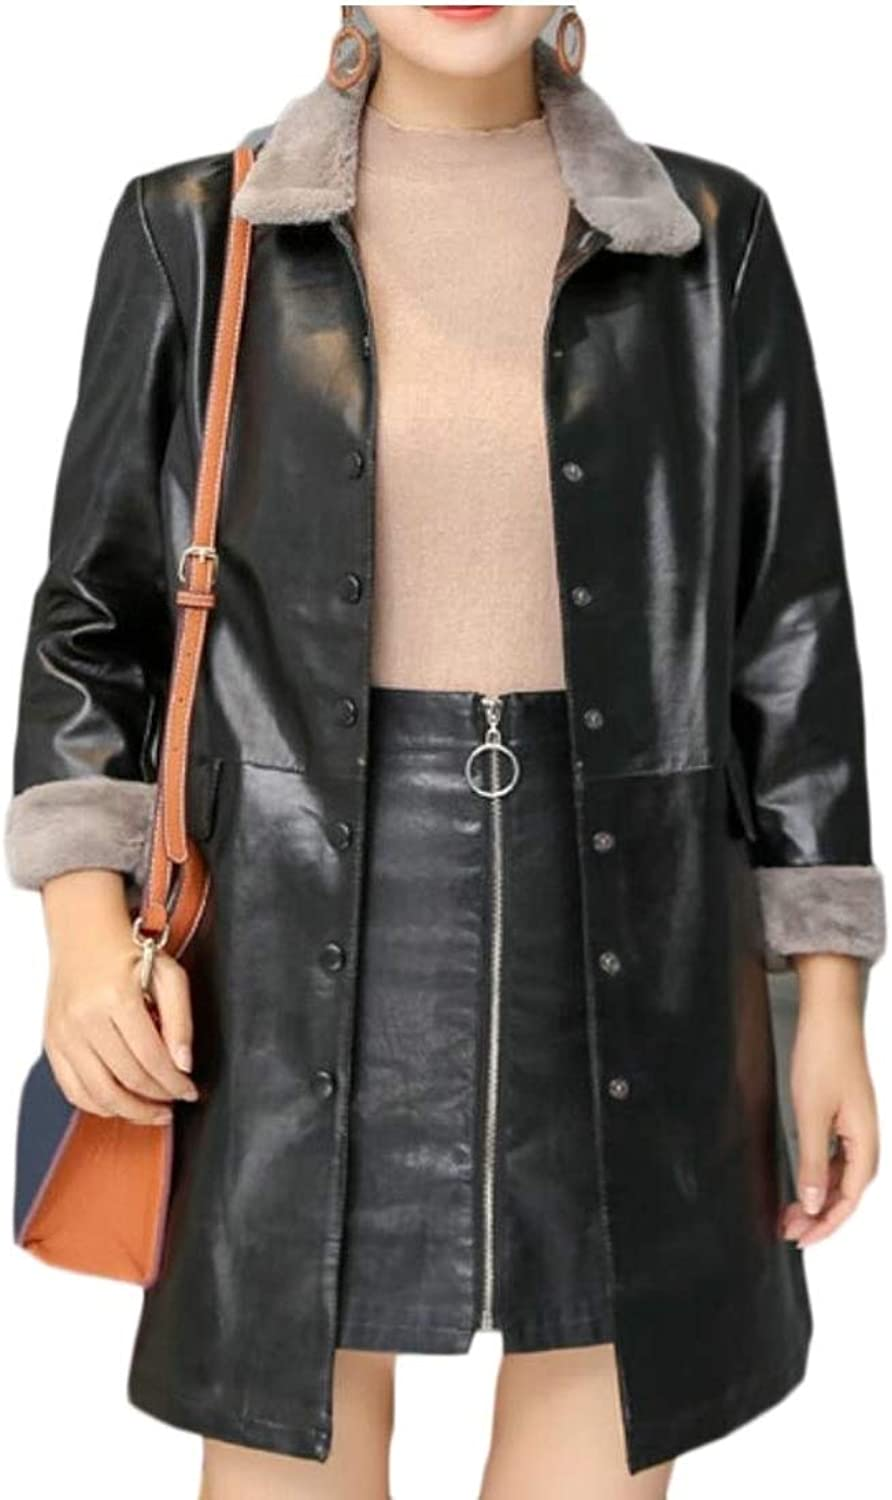 Jxfd Women's Faux Suede Leather Jackek Moto Jacket Faux Fur Collar Coats